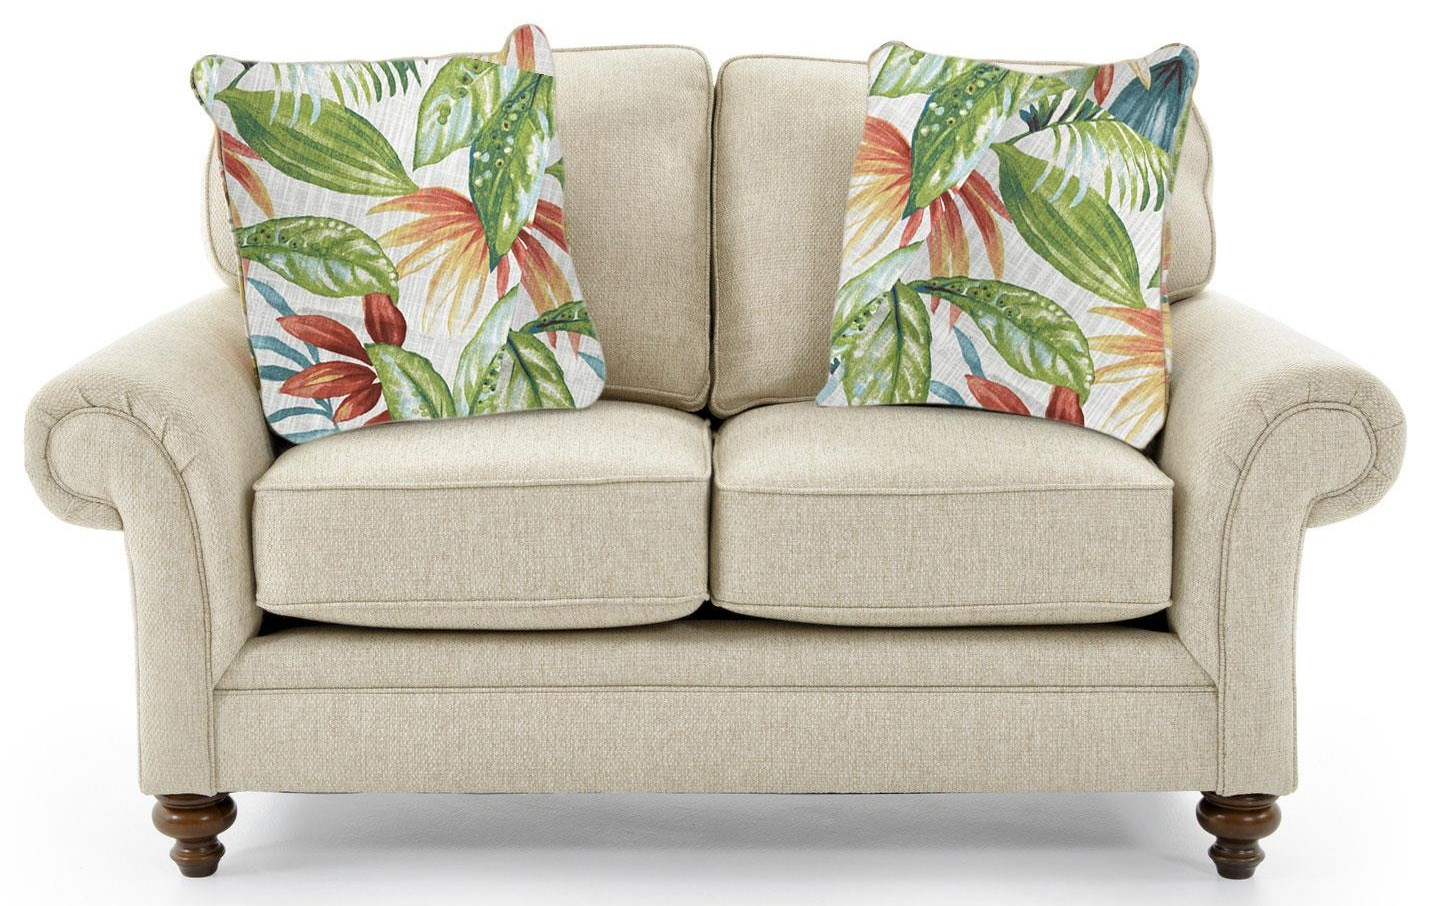 Larissa Rolled Arm Loveseat by Stone & Leigh Furniture at Baer's Furniture